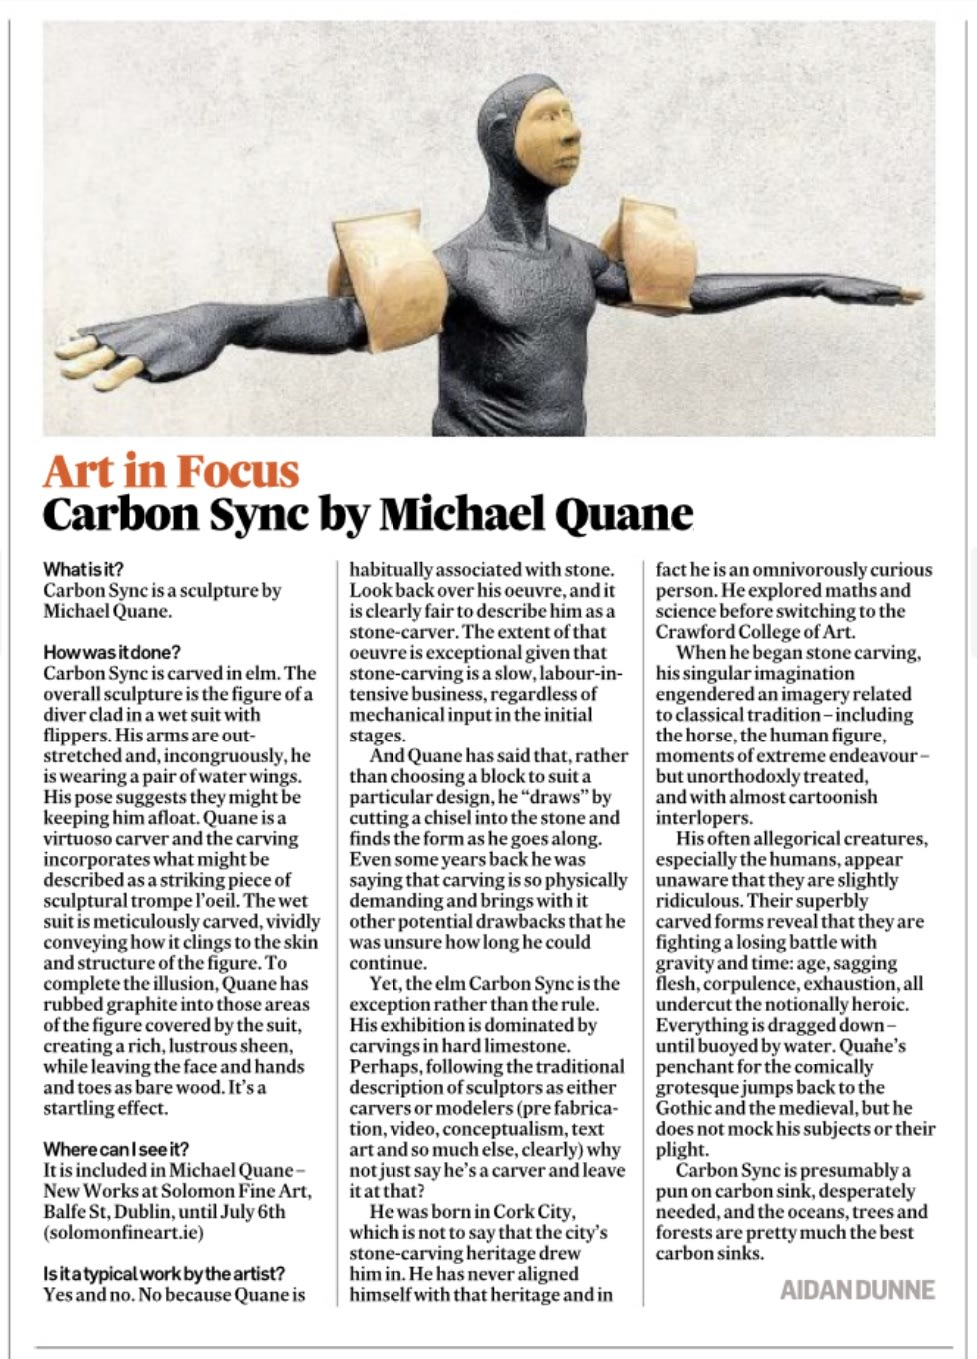 Irish Times: Art in Focus